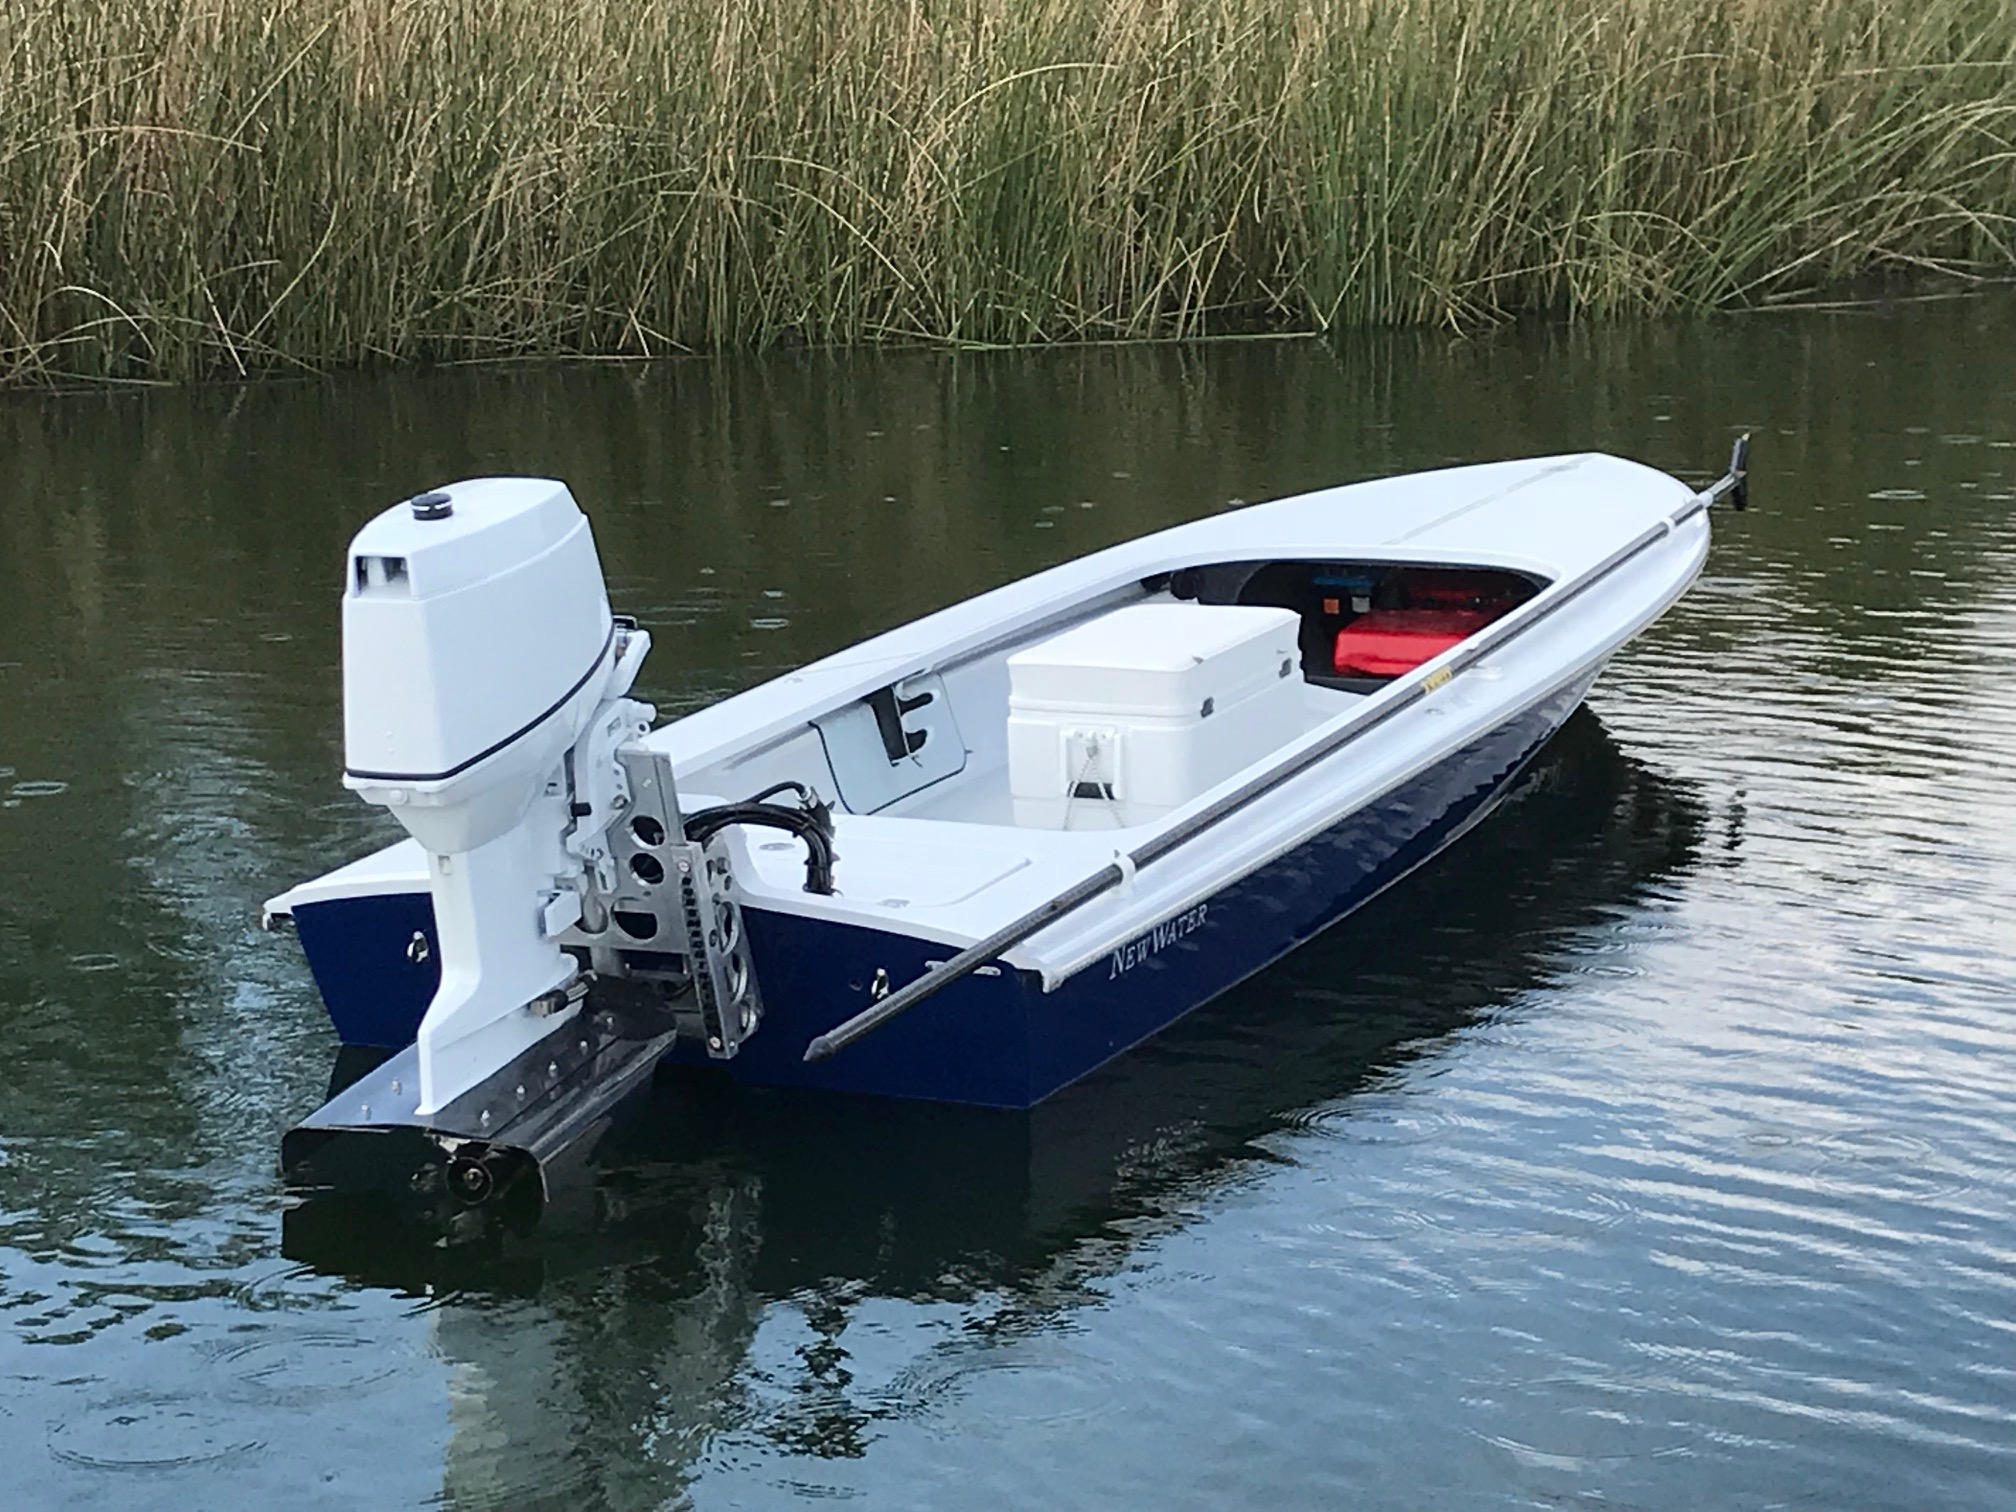 WHAT ALUMINUM FISHING BOATS HAVE A LACQUER FINISH